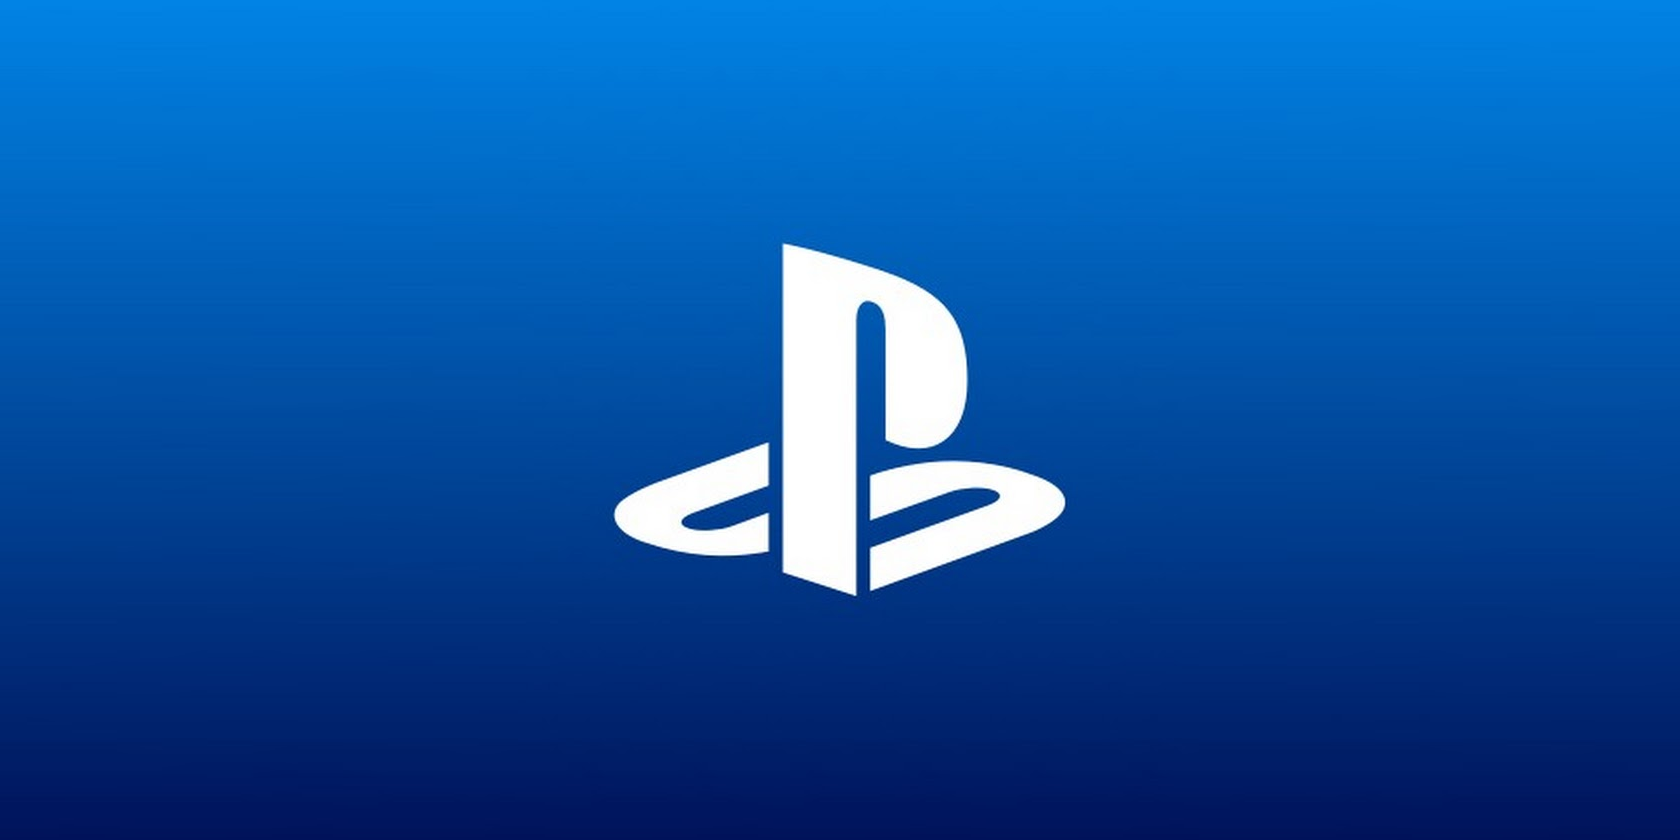 A New PlayStation Patent Will Let Experts Help You Beat Games